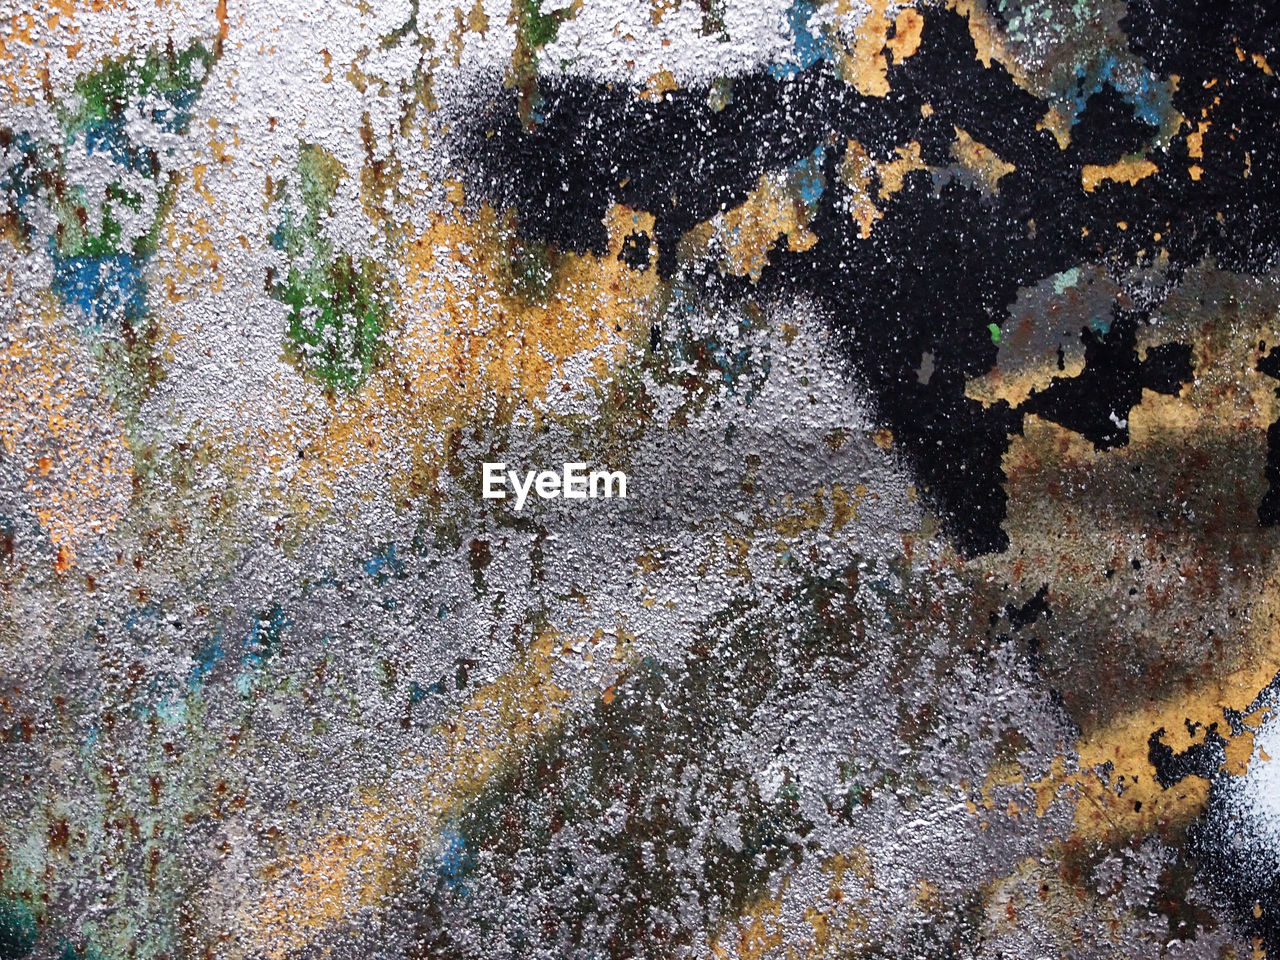 full frame, abstract, backgrounds, textured, rough, close-up, multi colored, no people, lichen, day, outdoors, nature